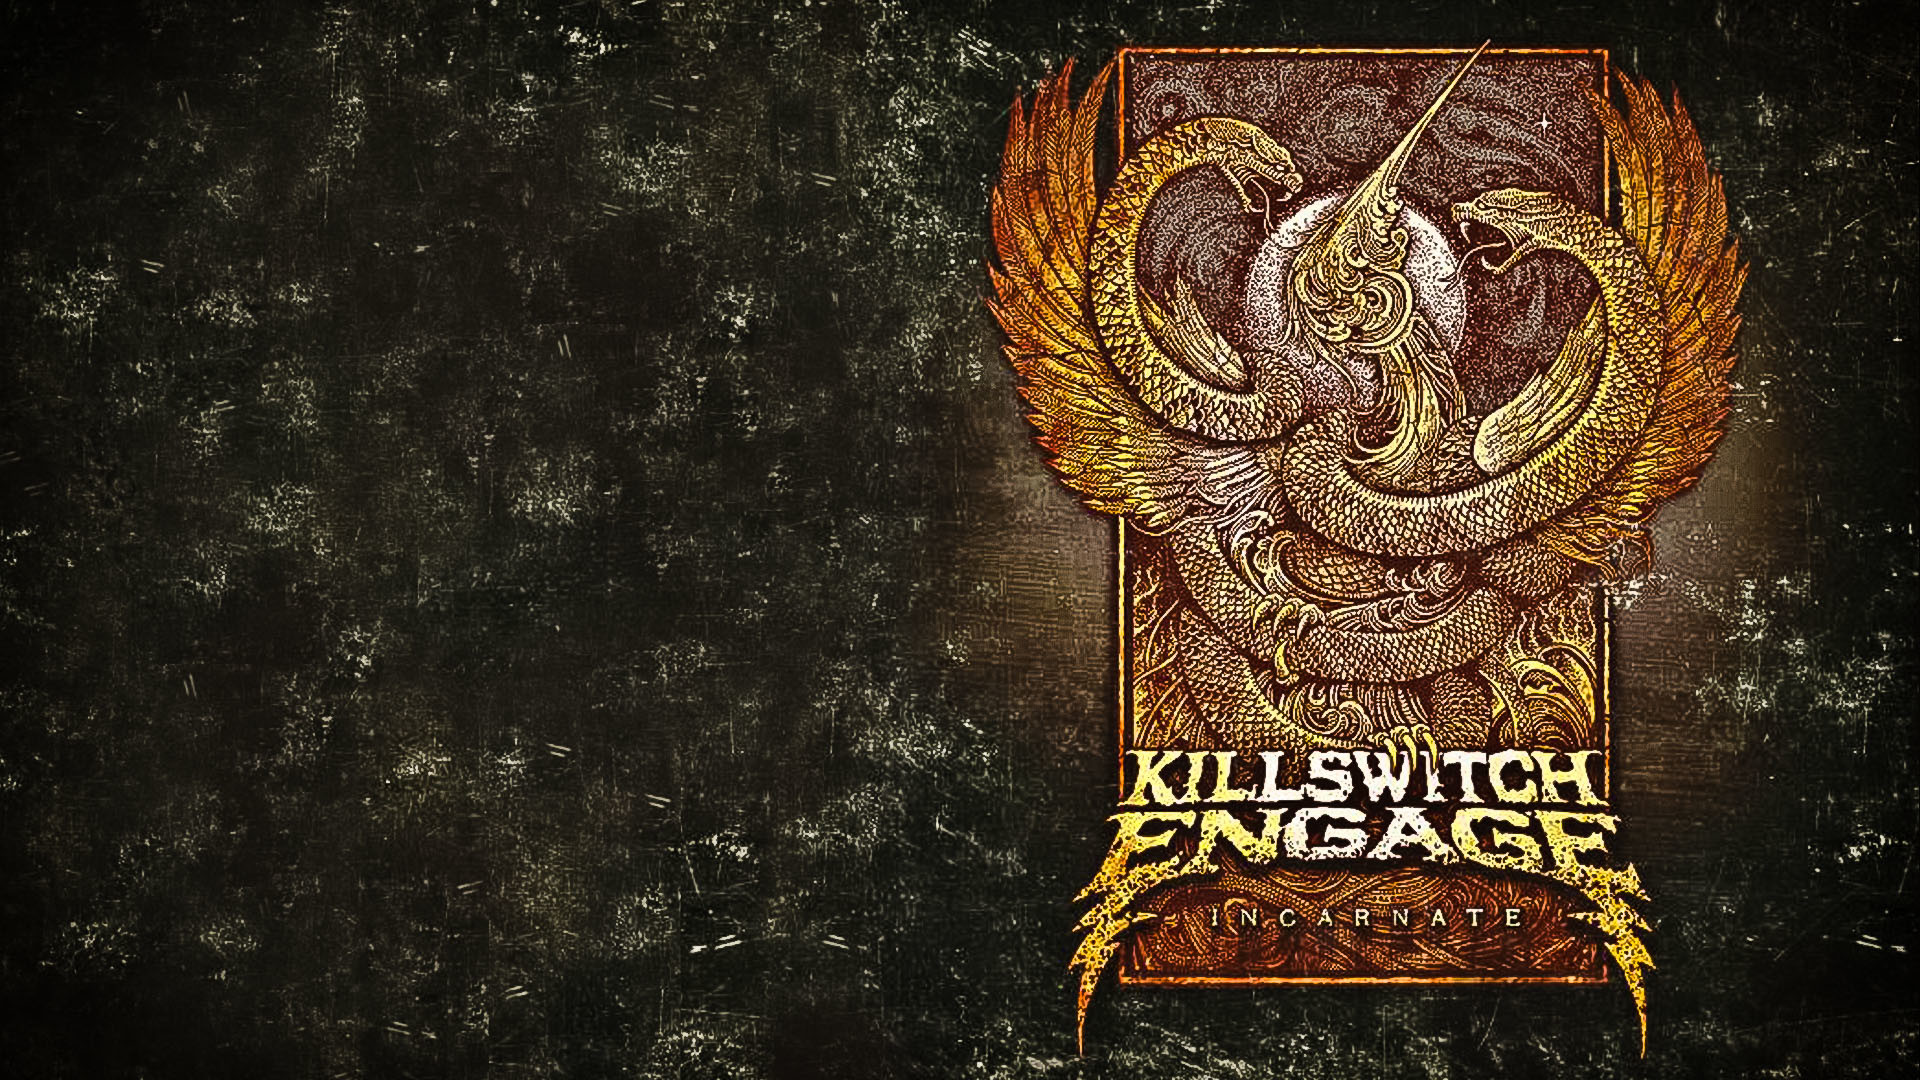 1920x1080 Killswitch Engage Incarnate based Wallpaper Hate by Design Strength of the  mind